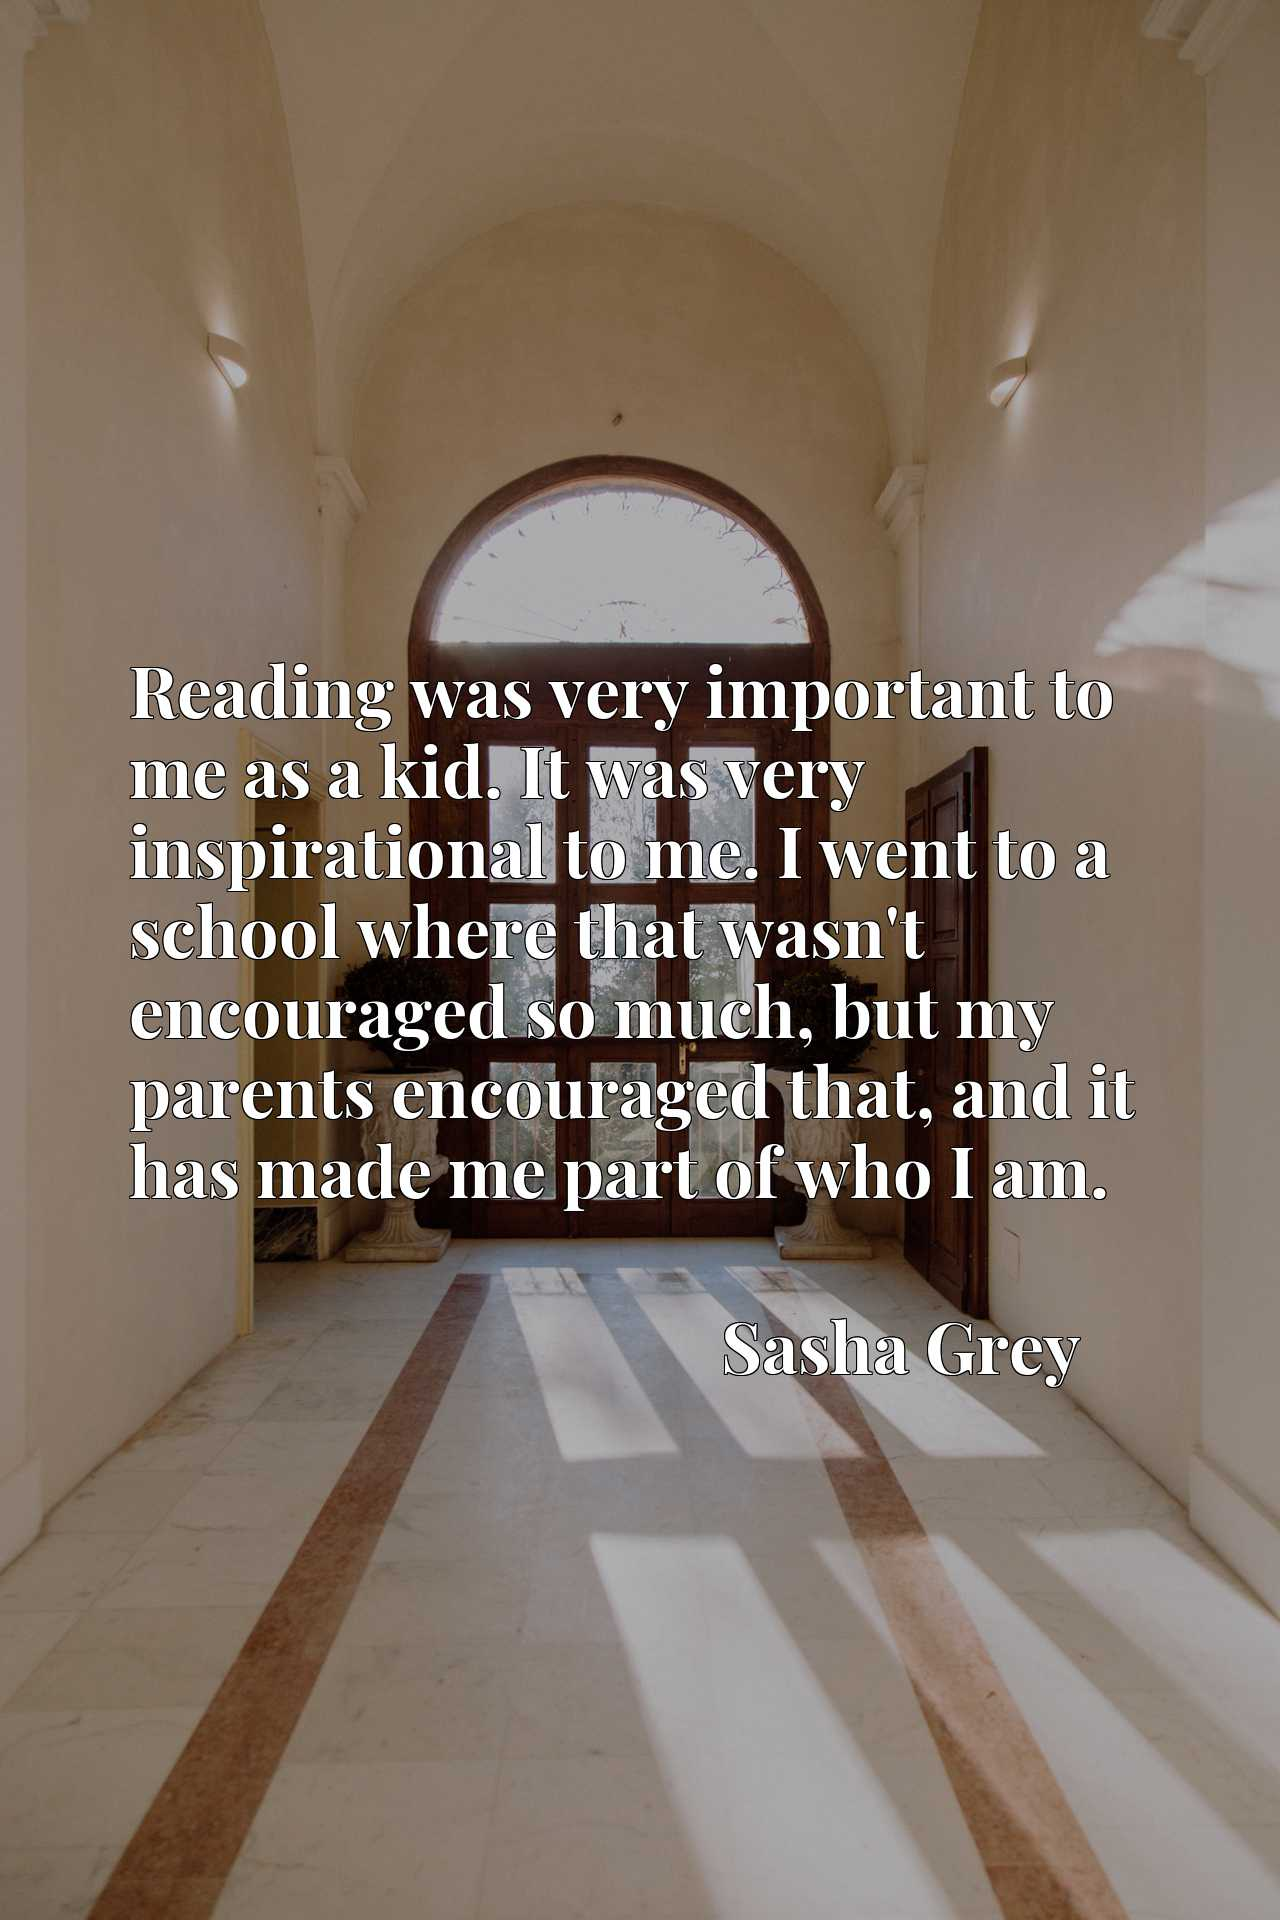 Reading was very important to me as a kid. It was very inspirational to me. I went to a school where that wasn't encouraged so much, but my parents encouraged that, and it has made me part of who I am.